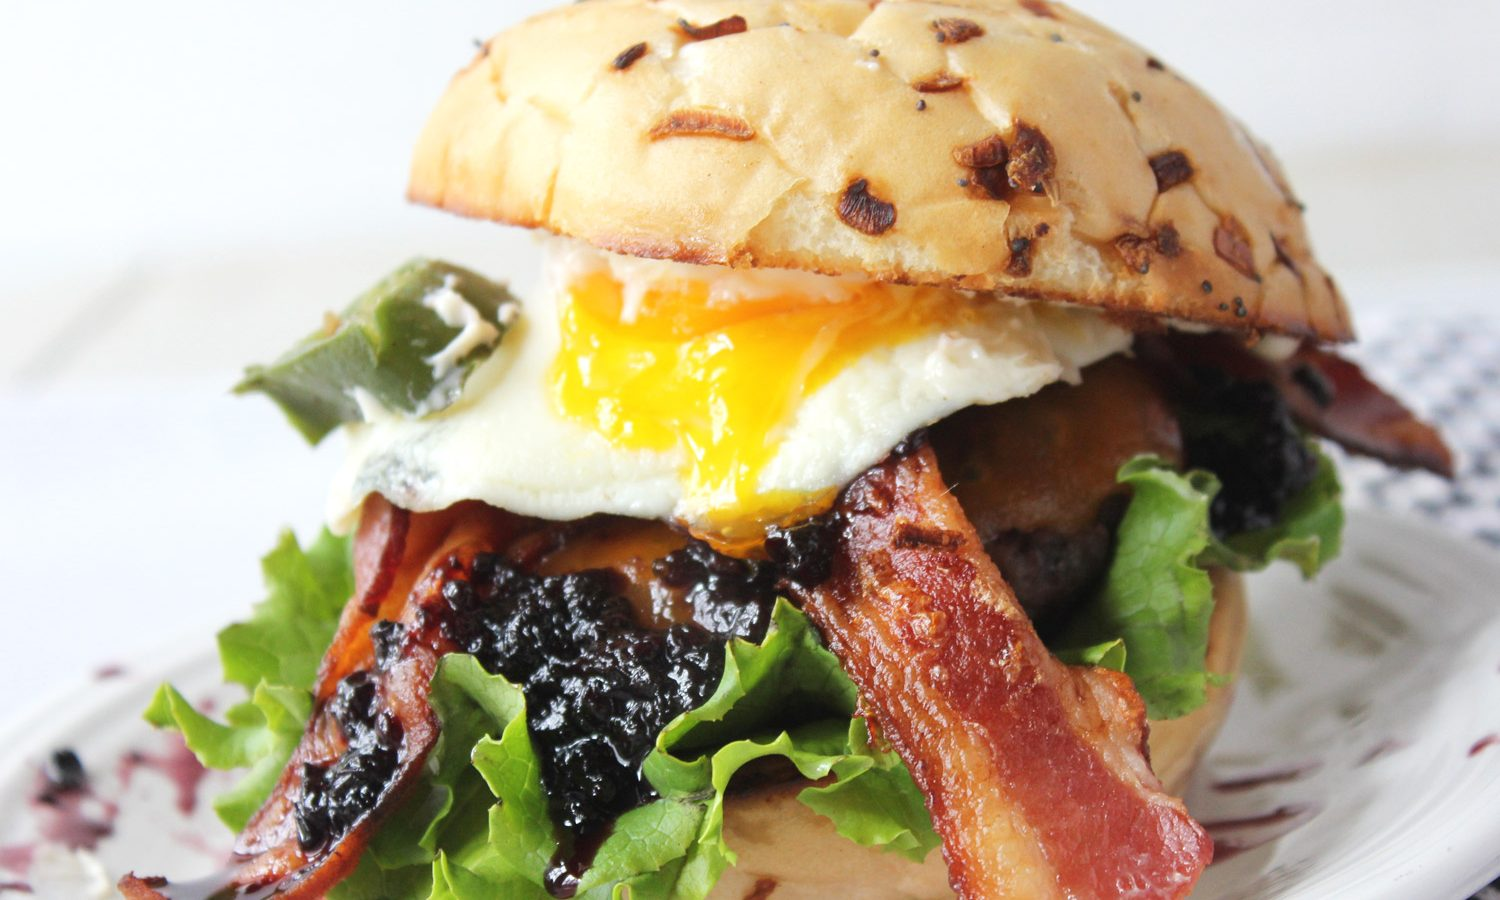 Burger with egg on a onion bun with bacon, peppers, and blackberry jam